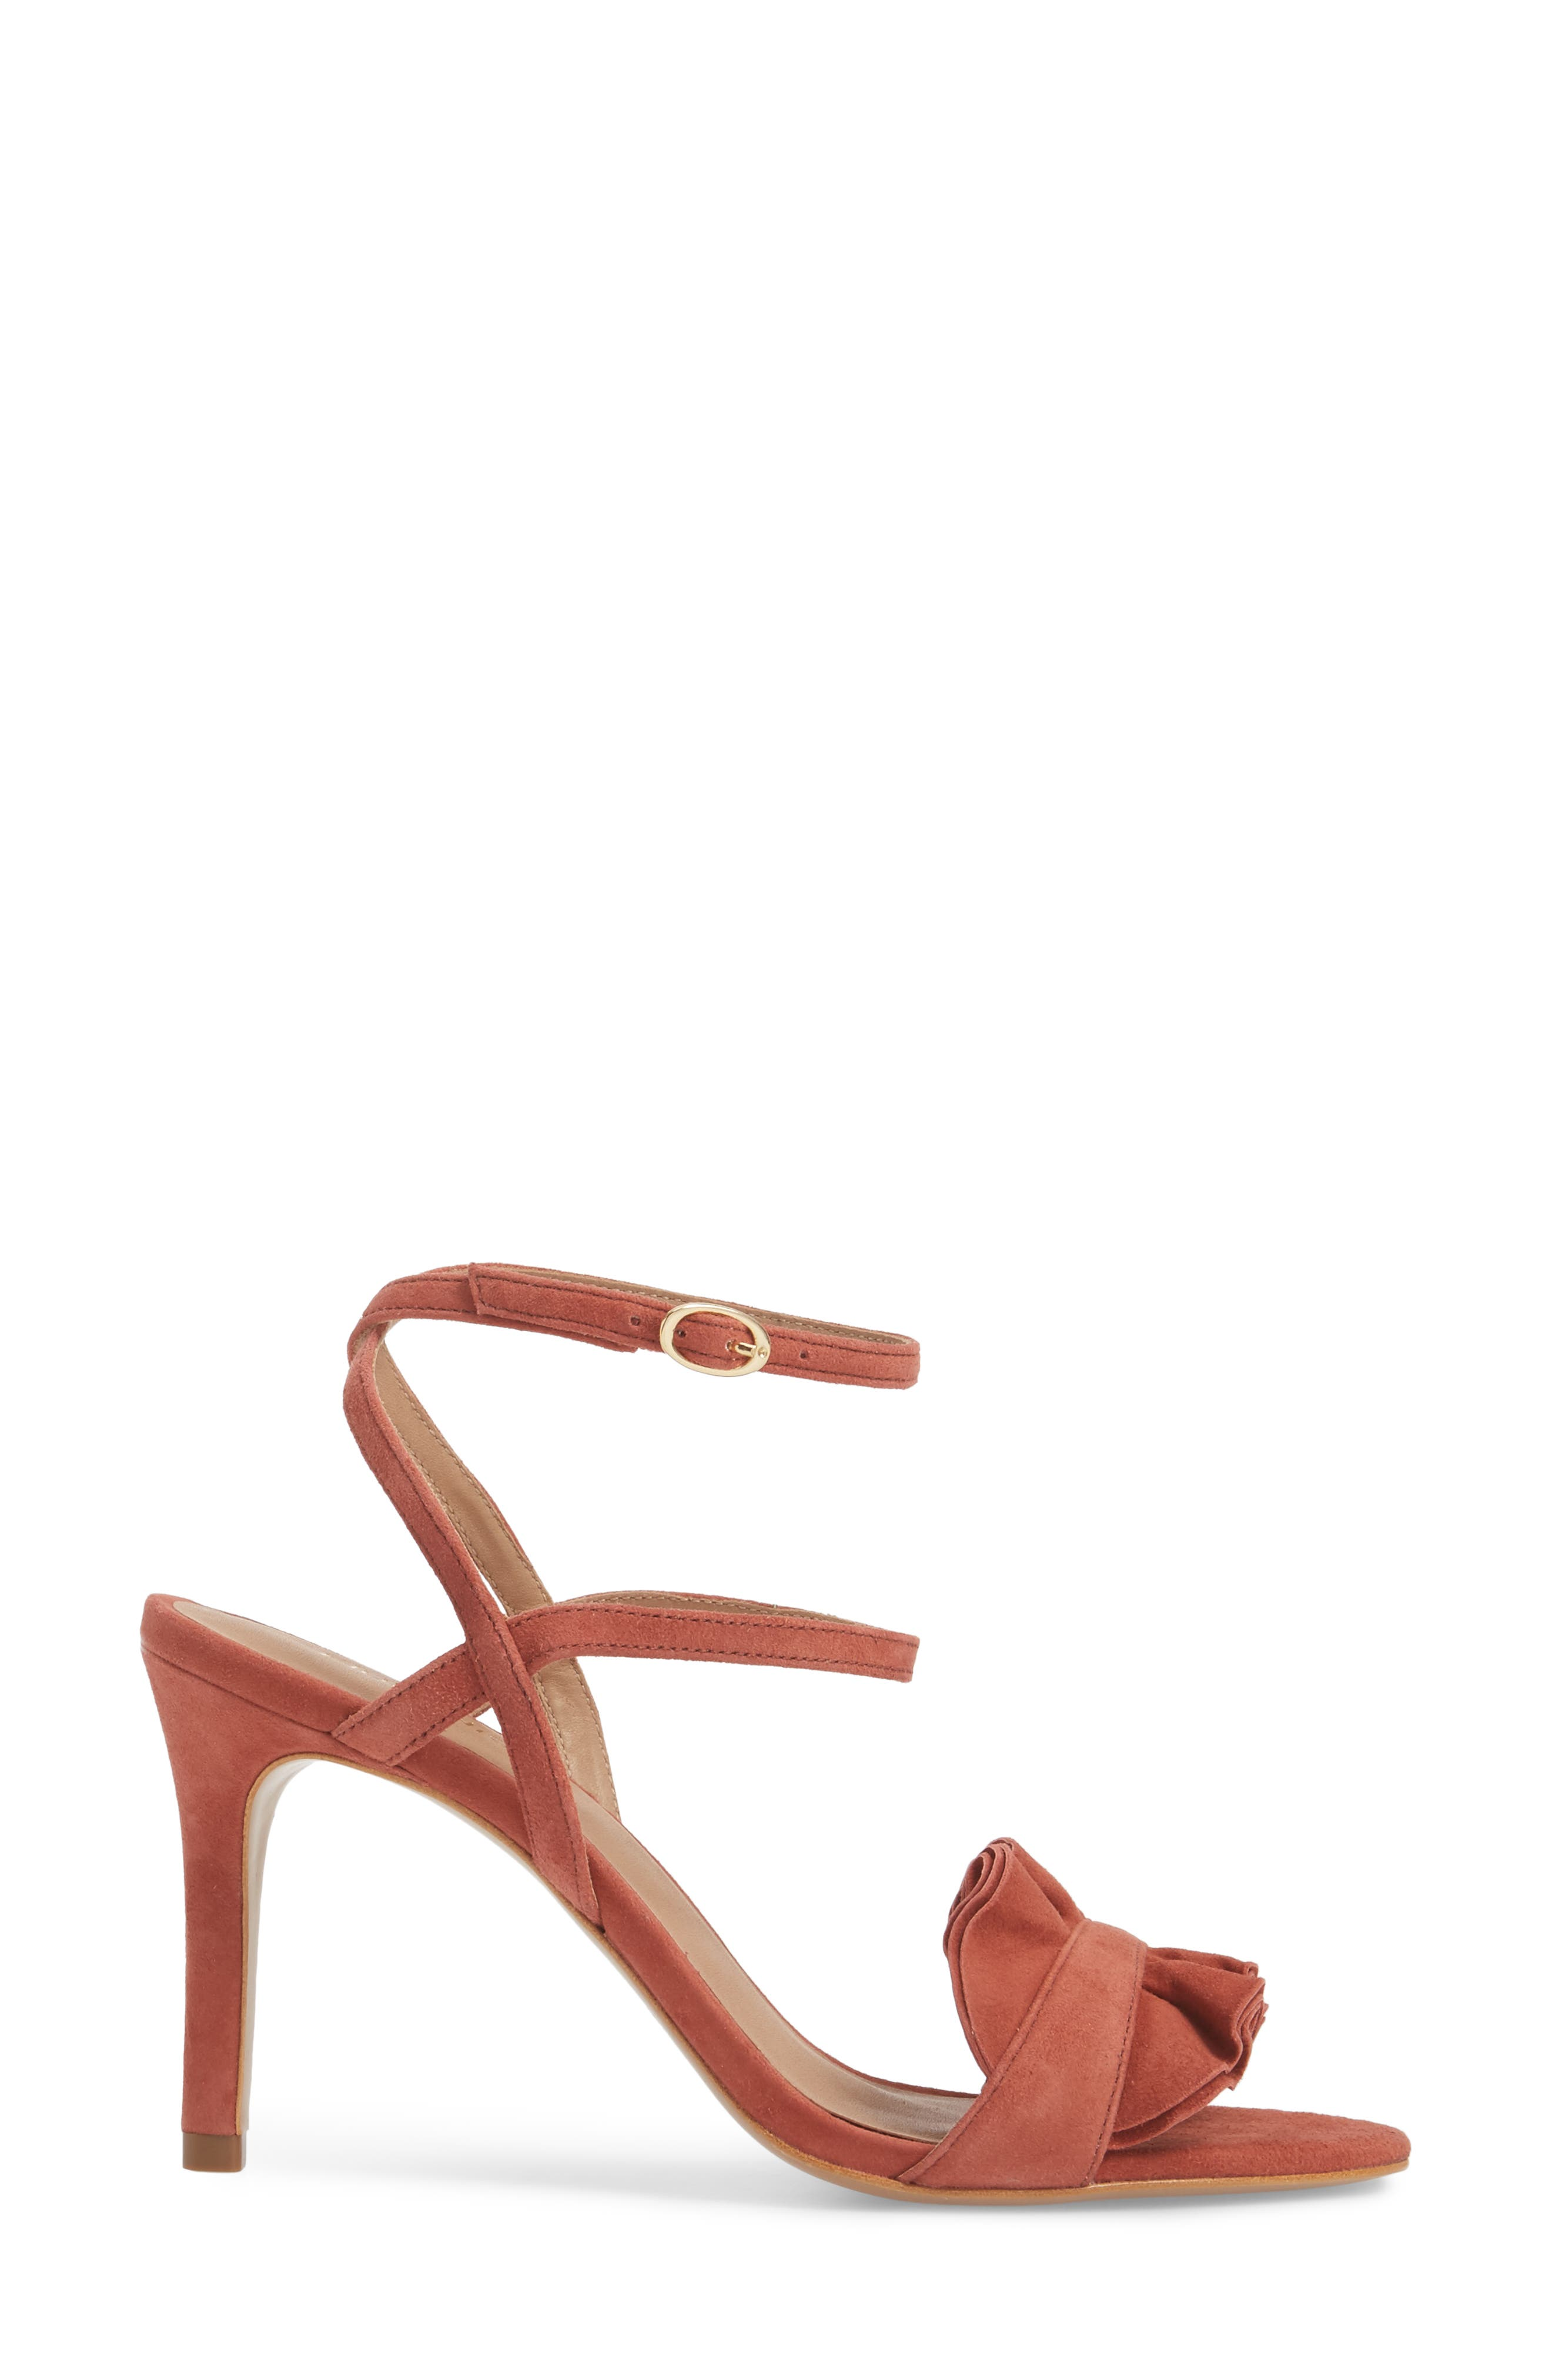 Ansley Sandal,                             Alternate thumbnail 3, color,                             Spice Suede